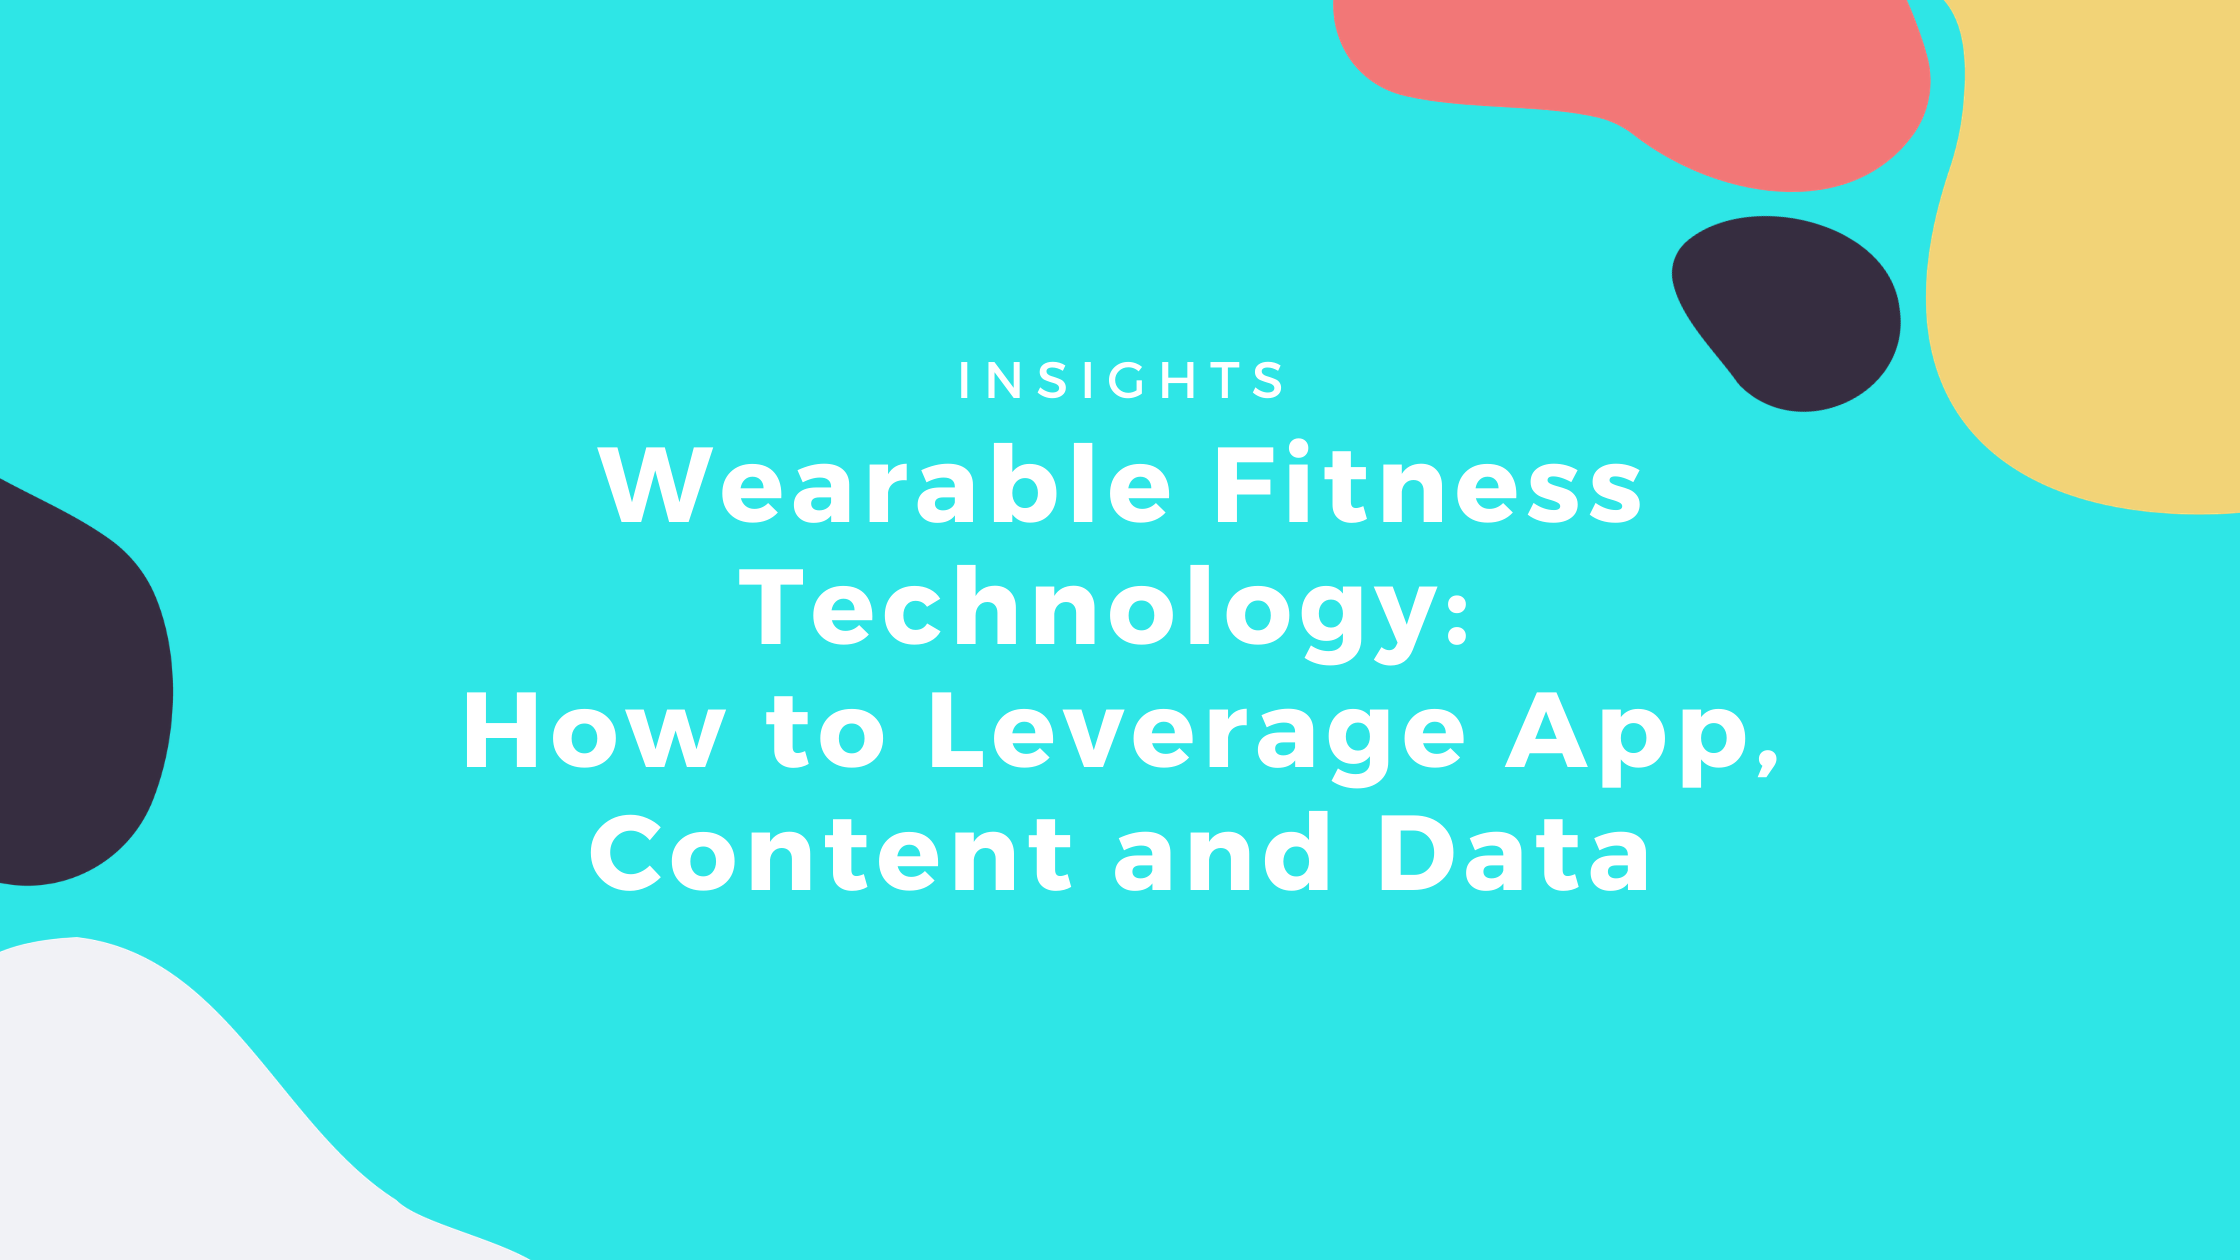 Wearable Fitness Technology Insights